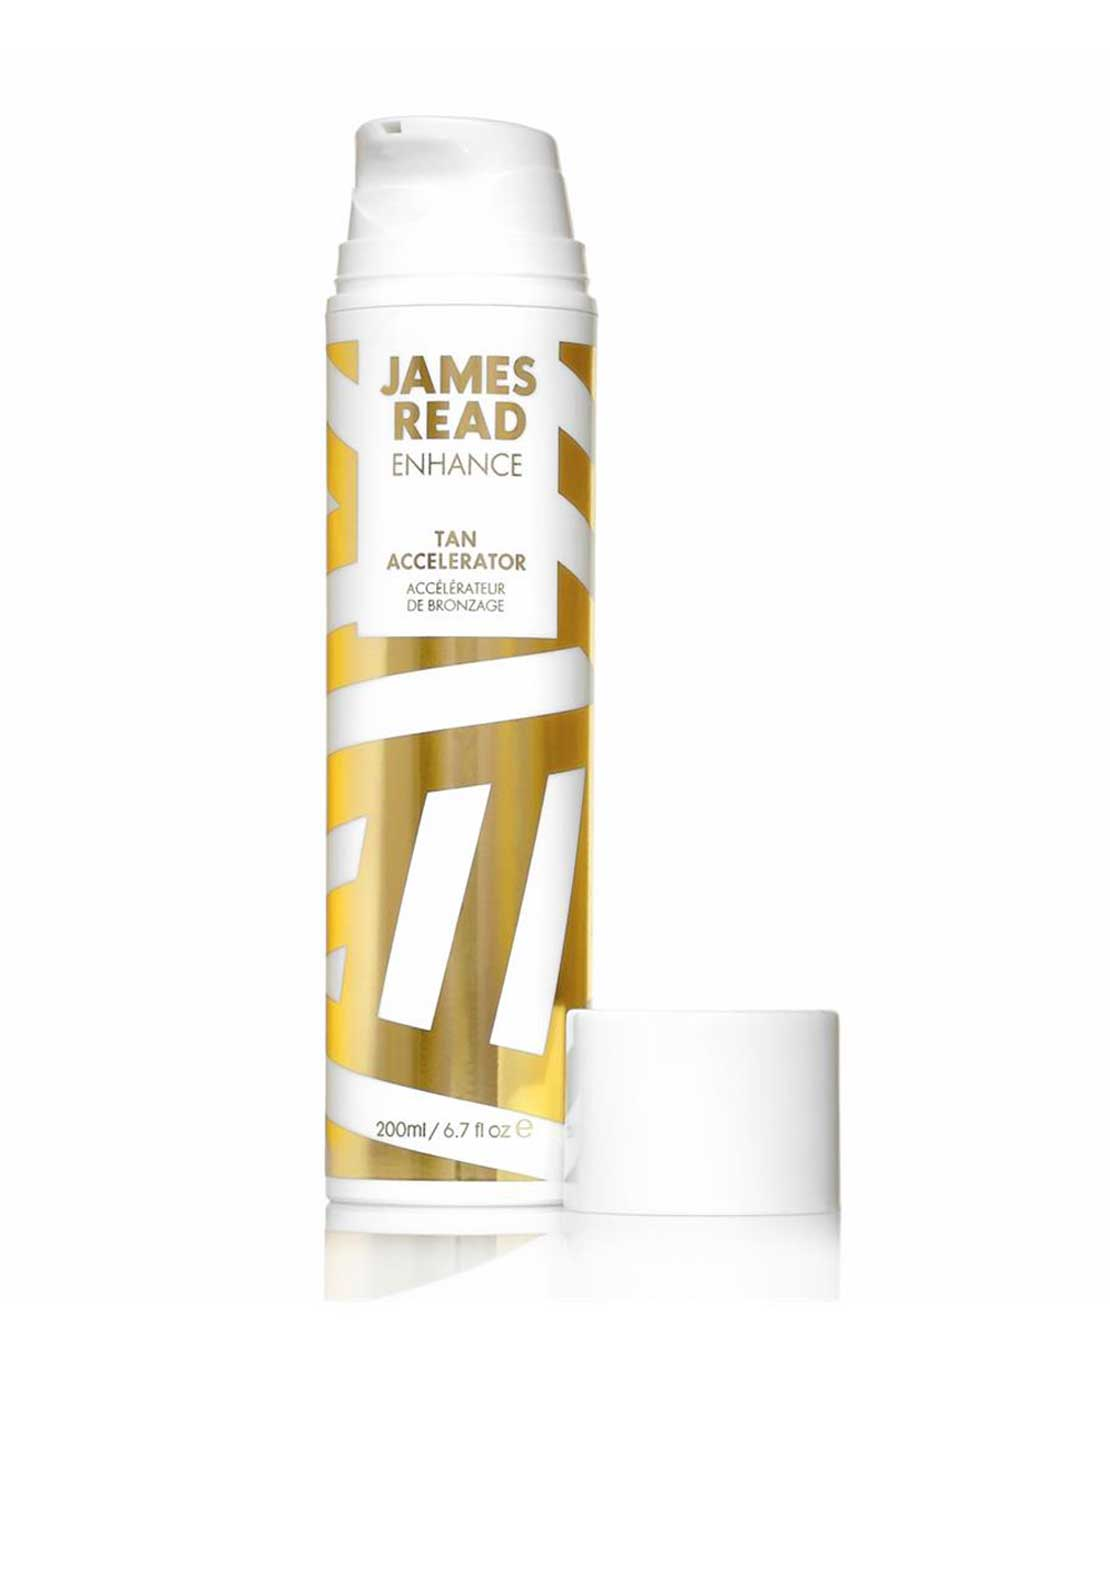 James Read Enhance Tan Accelerator